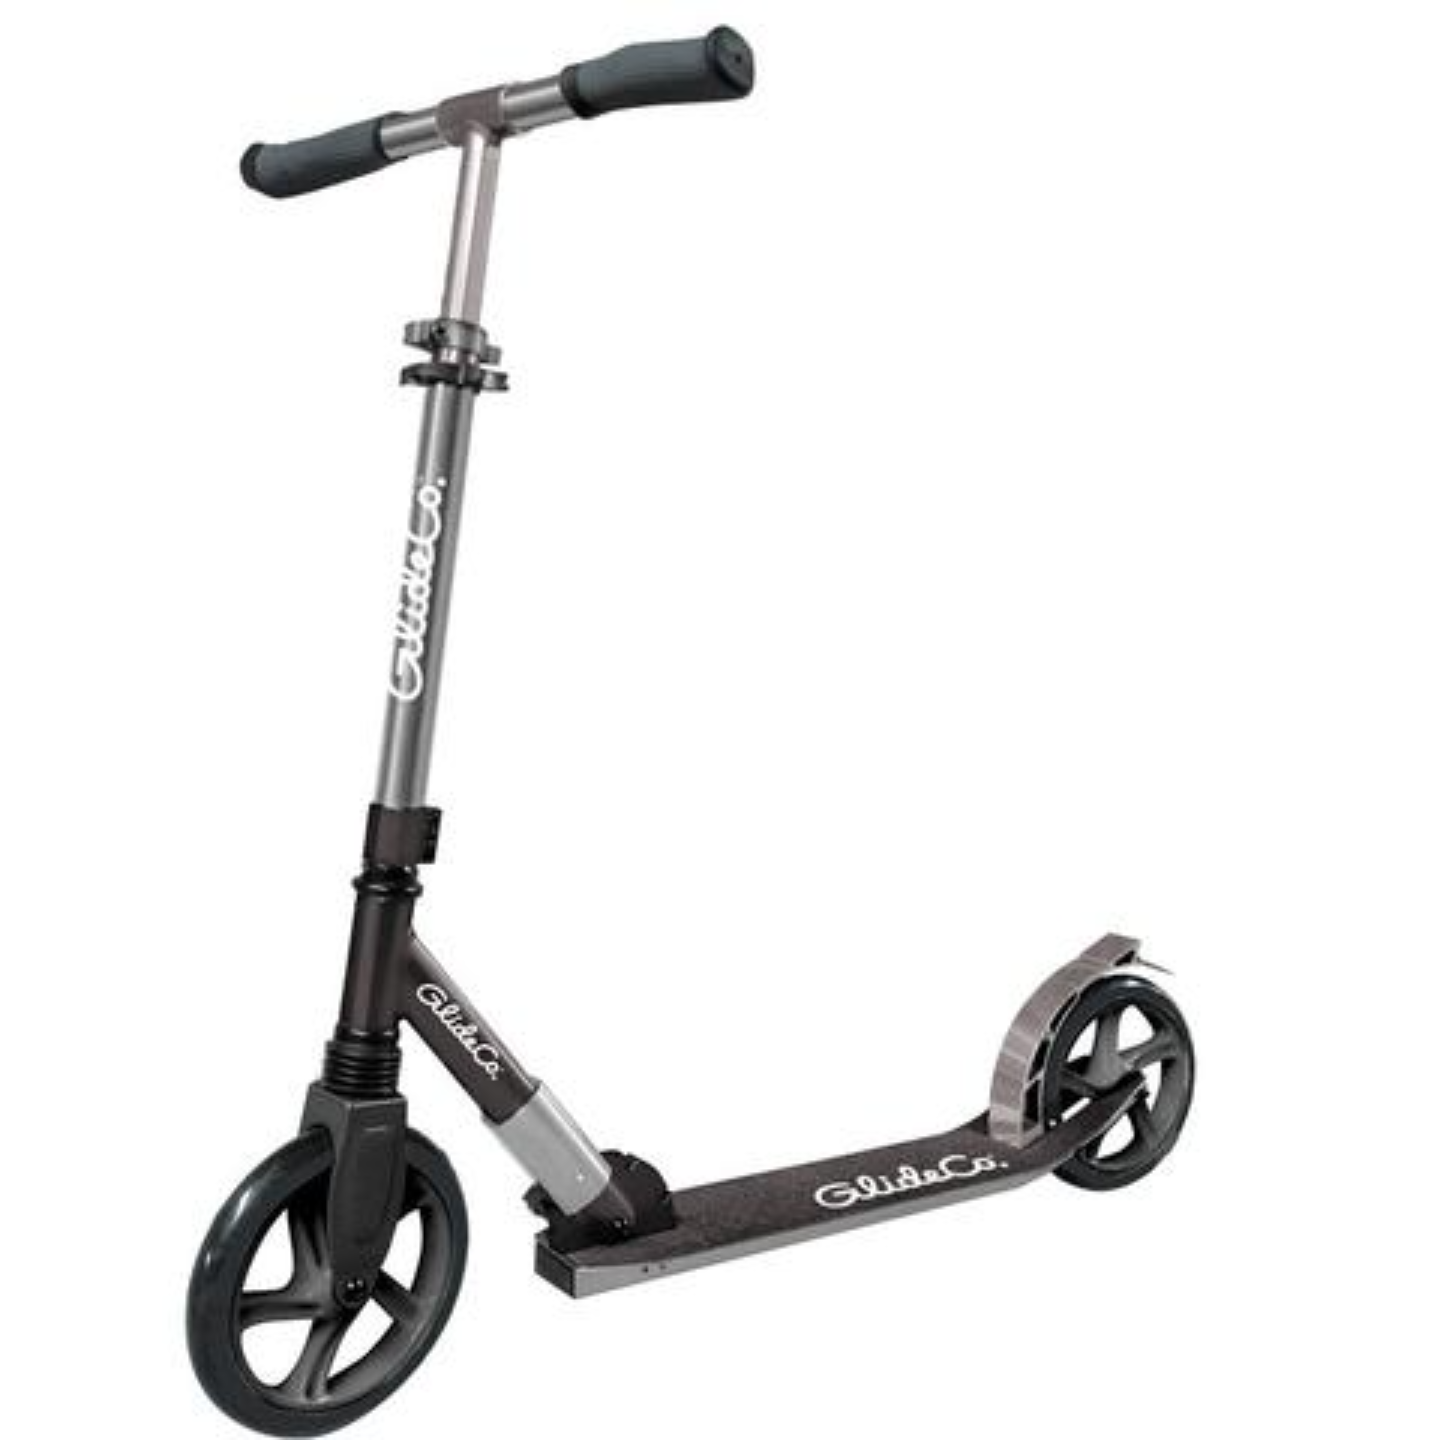 GlideCo Cruiser230 kick scooter